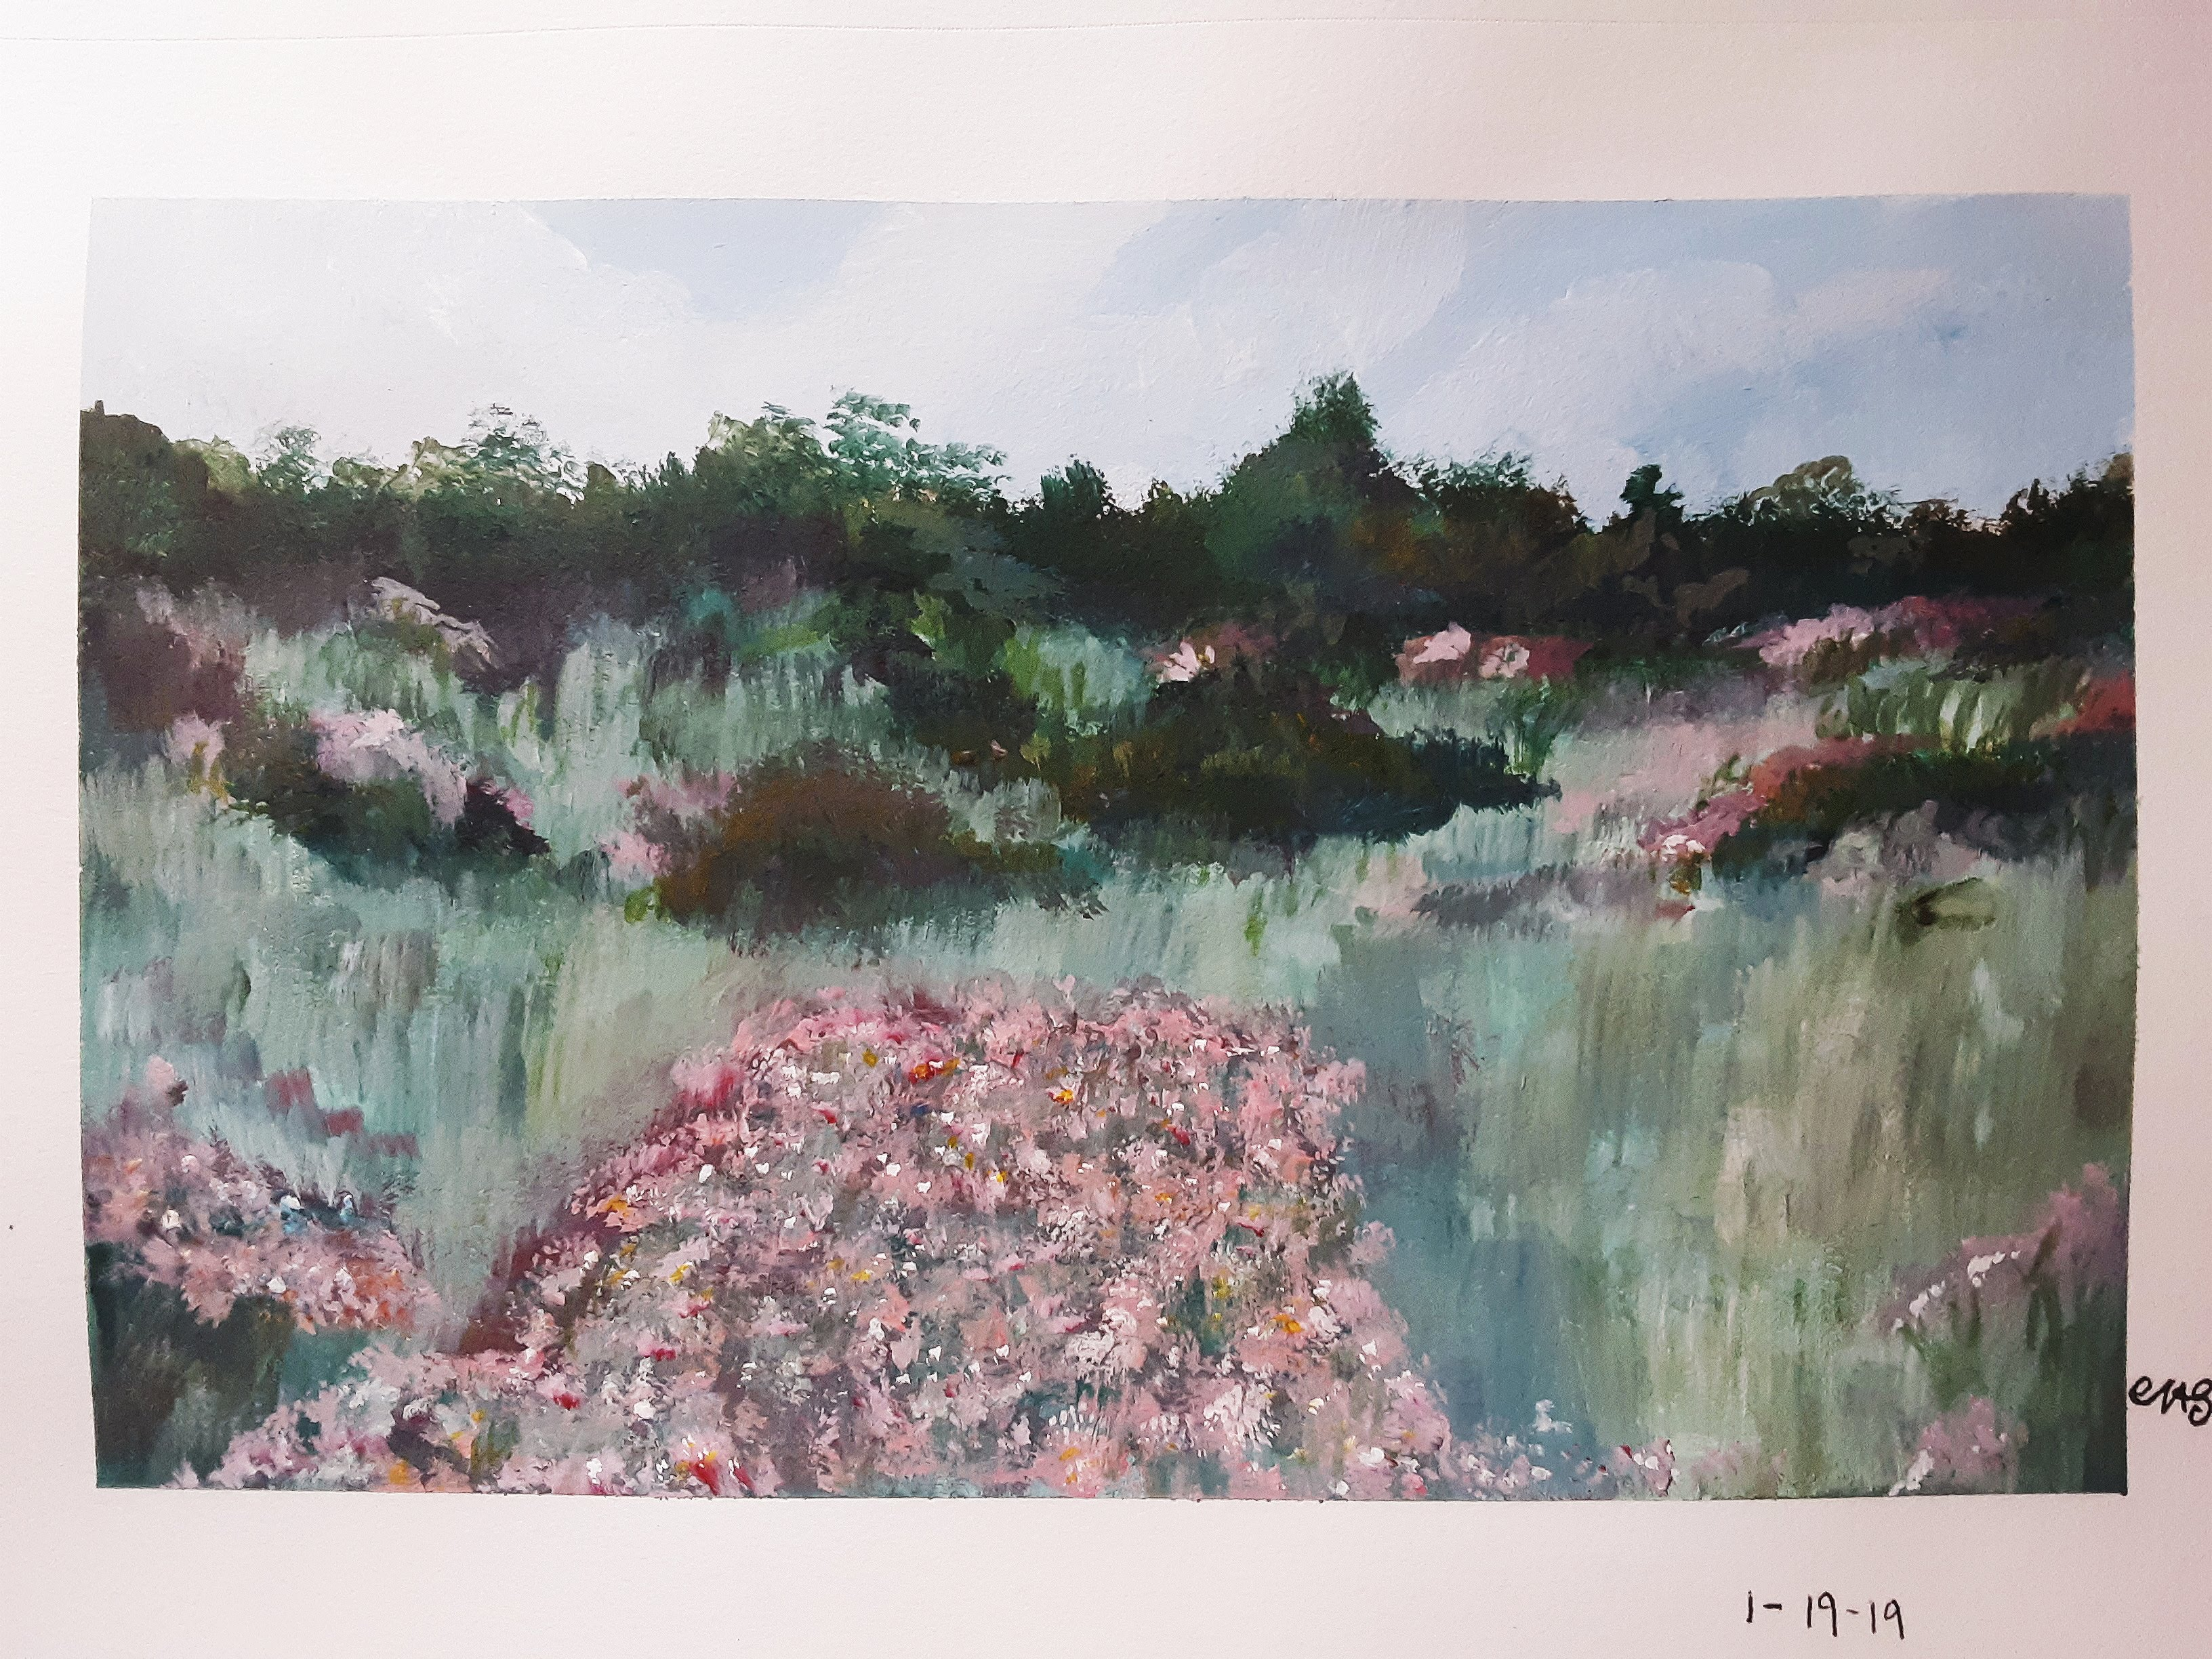 Field of Flowers - Inspired by Monet